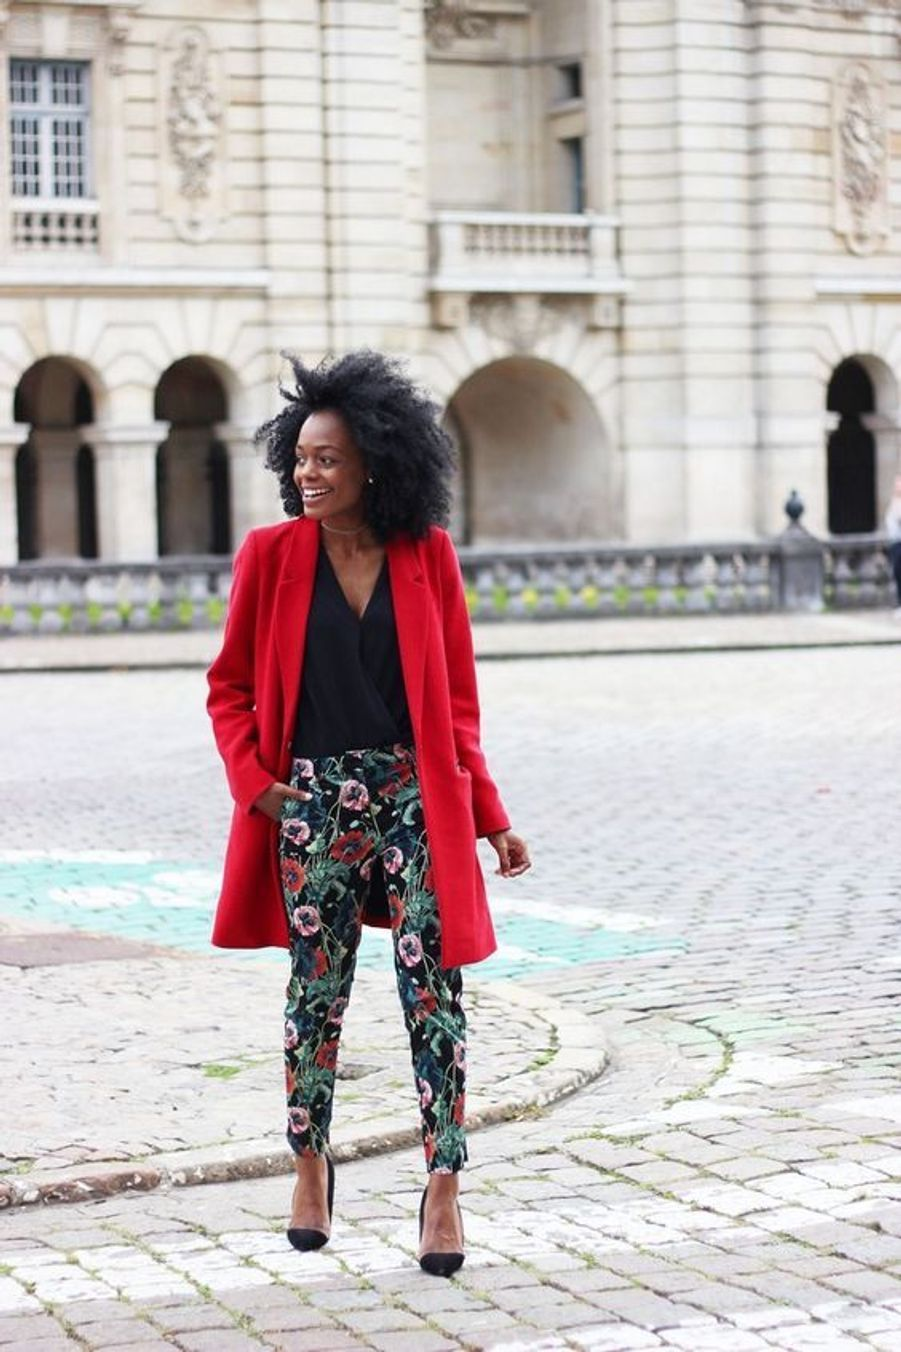 Manteau rougehttps://www.pinterest.fr/pin/492440540497930146/